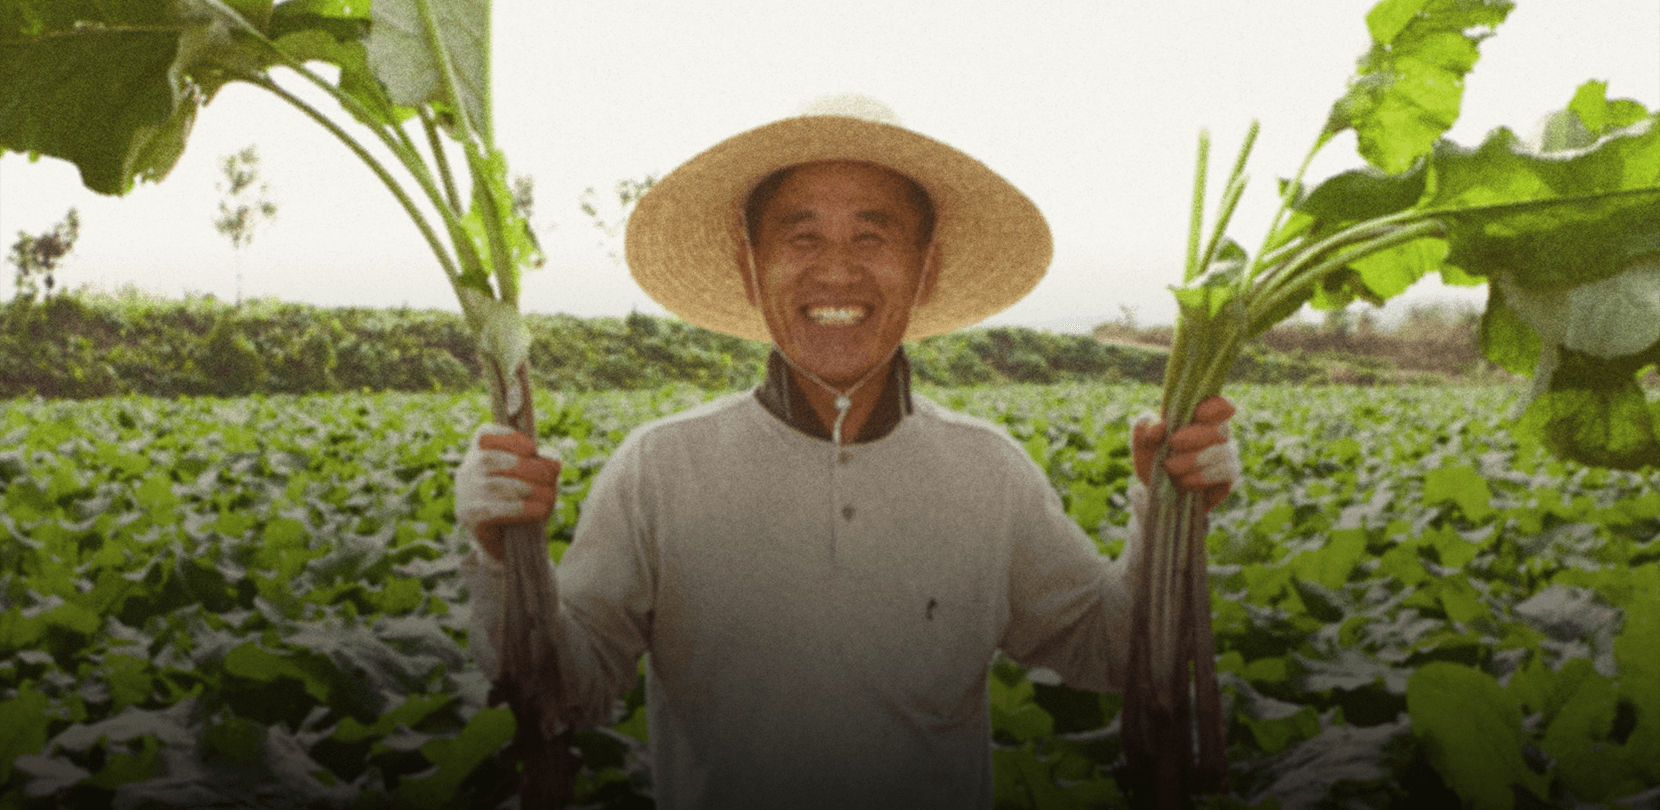 From farm to your table